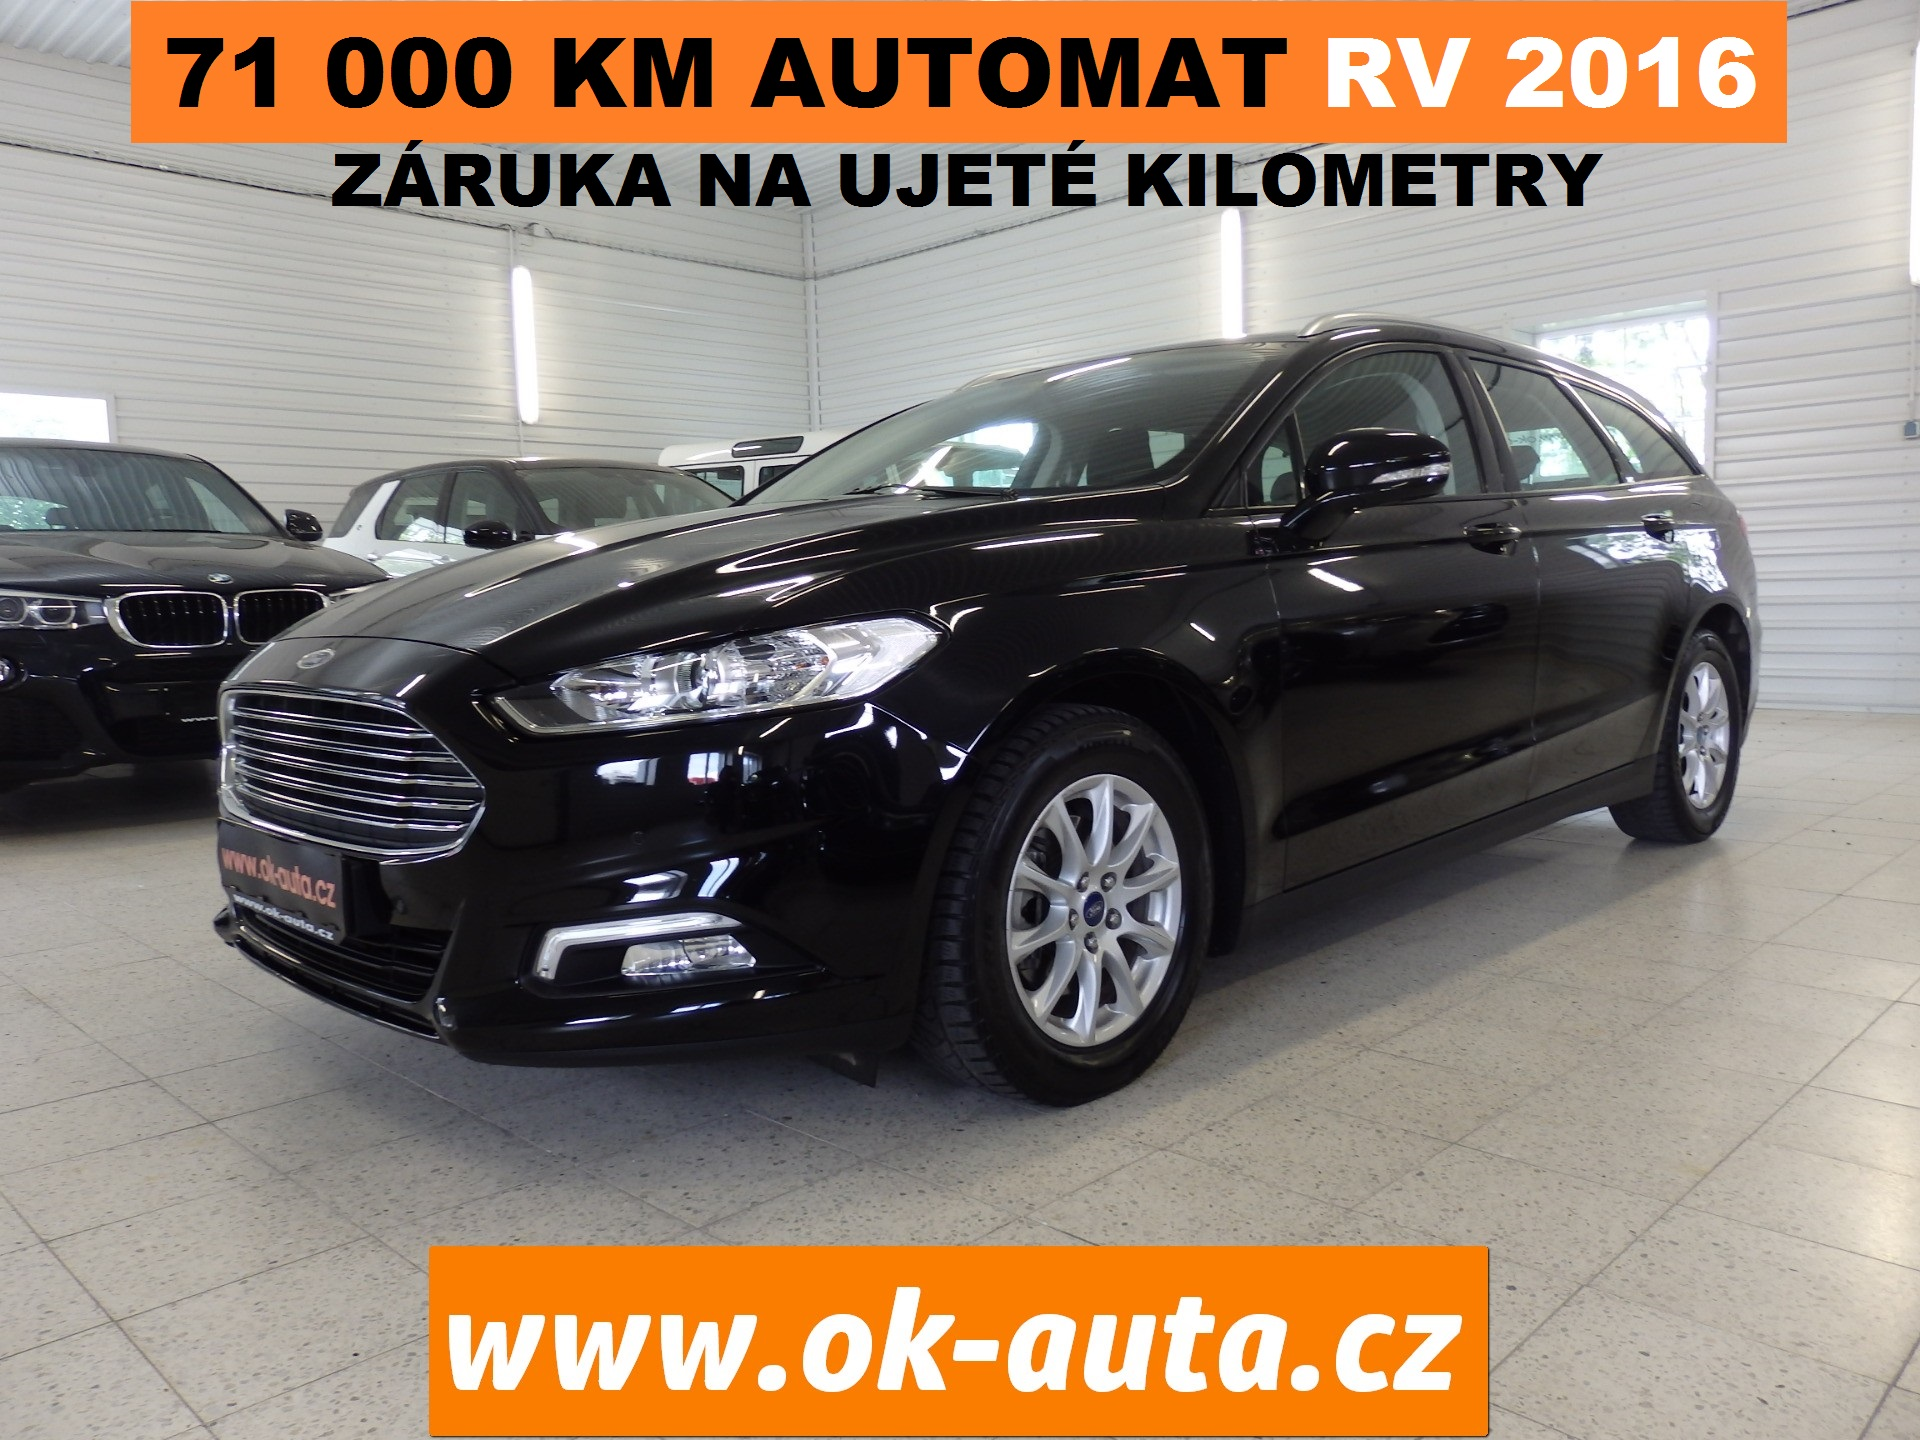 Ford Mondeo 2.0 TDCI Busines navi 04/2016